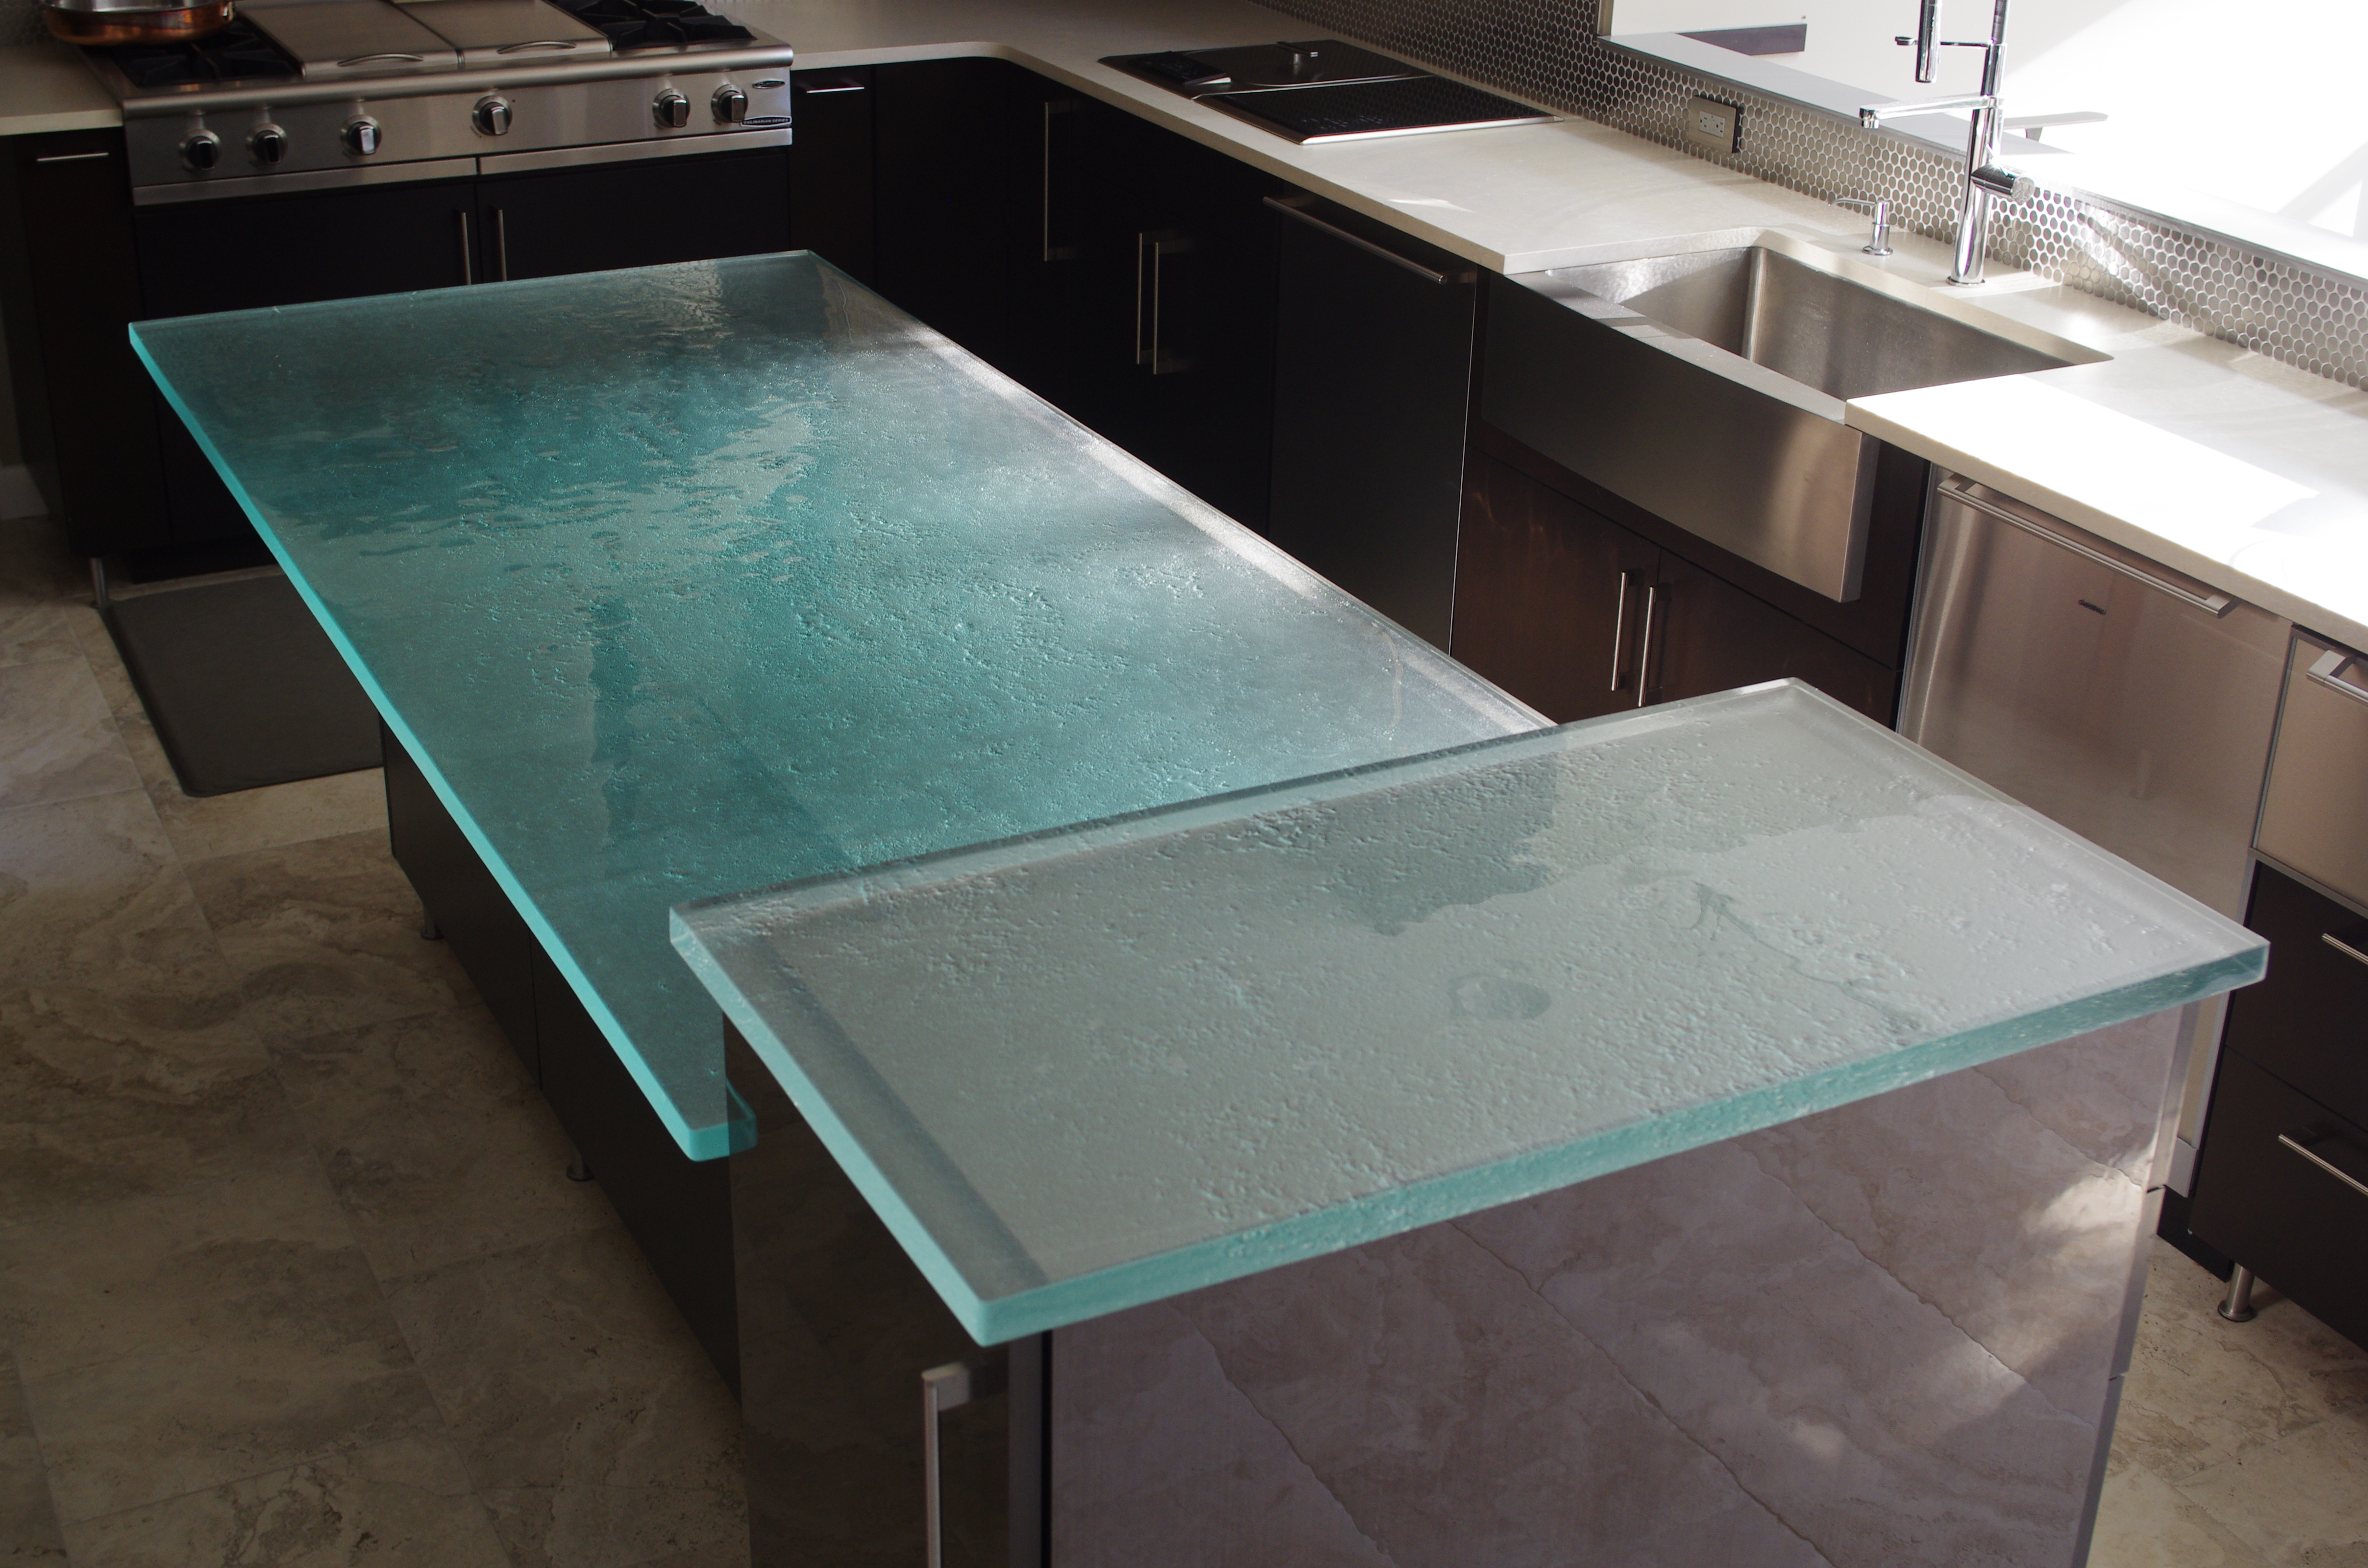 Kitchen Remodeling | A.W. Martin Construction, Inc